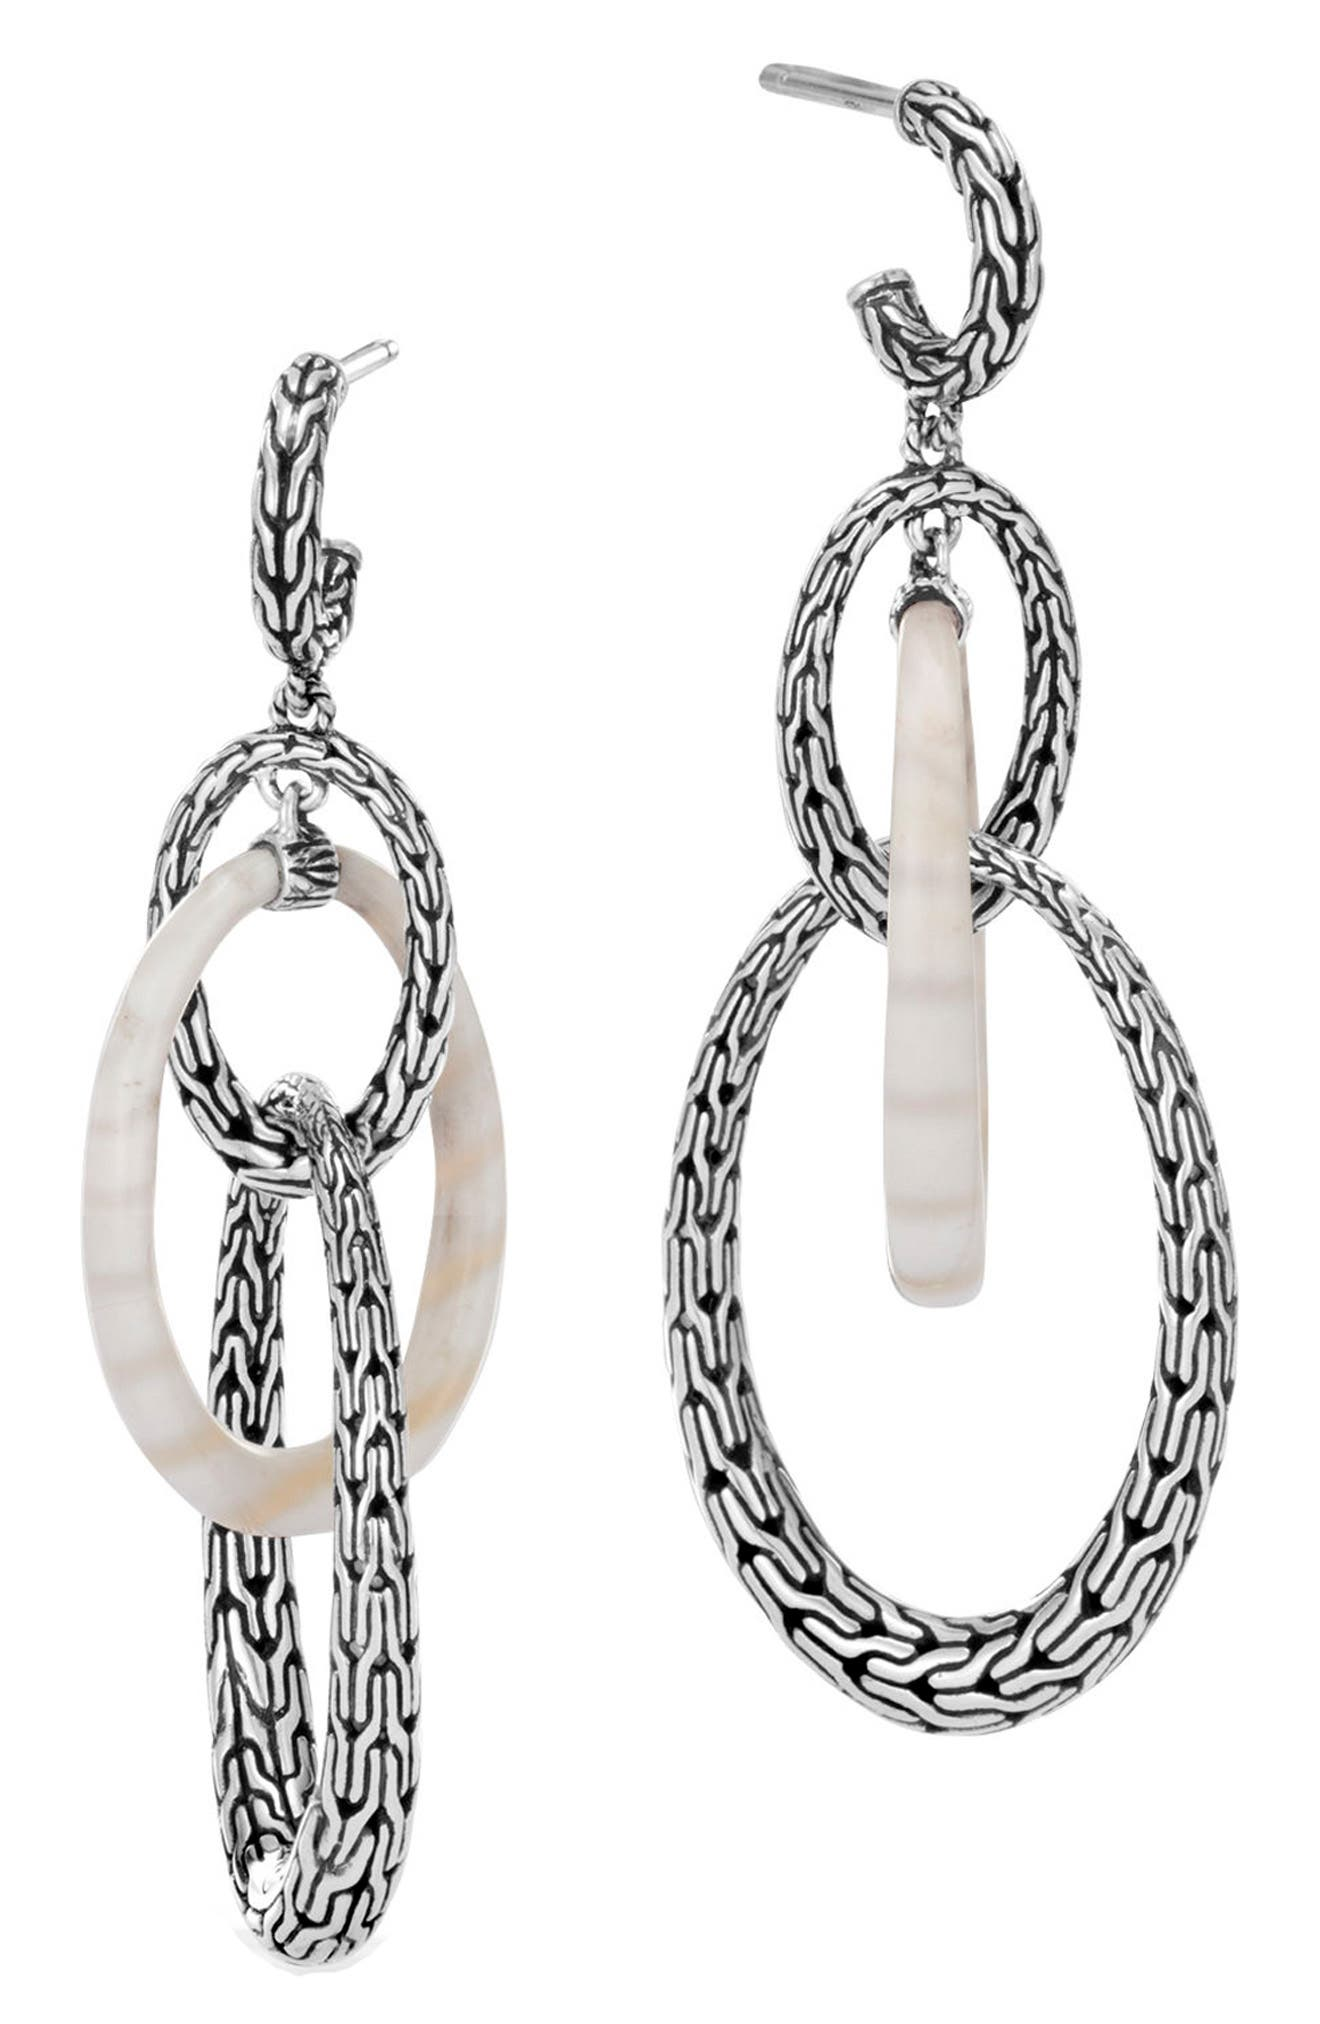 Classic Chain Silver White Agate Drop Earrings,                         Main,                         color, WHITE AGATE/ SILVER